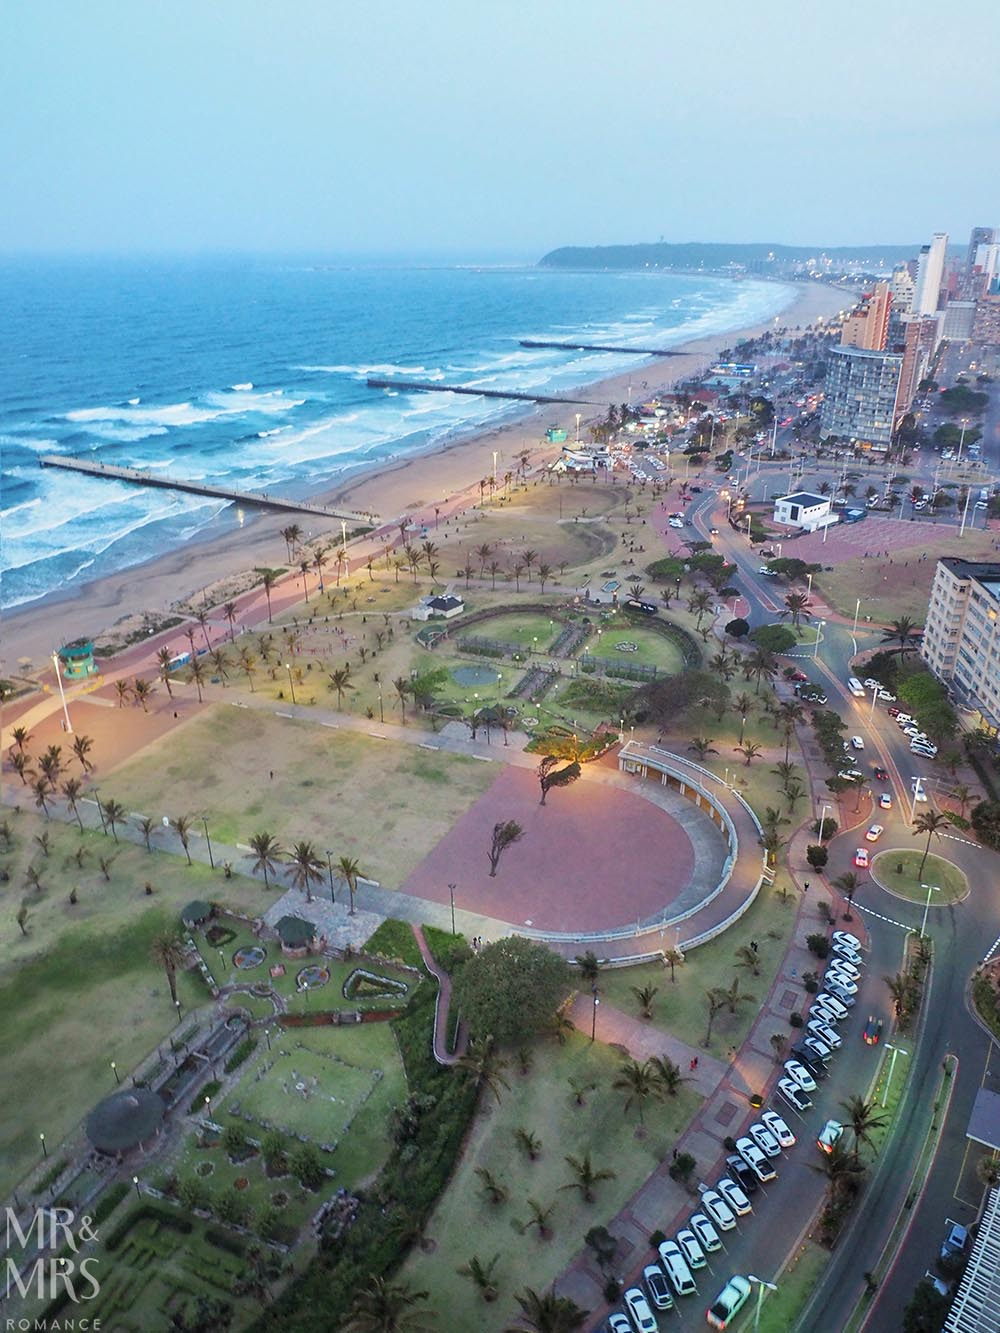 South Africa Tourism - Durban